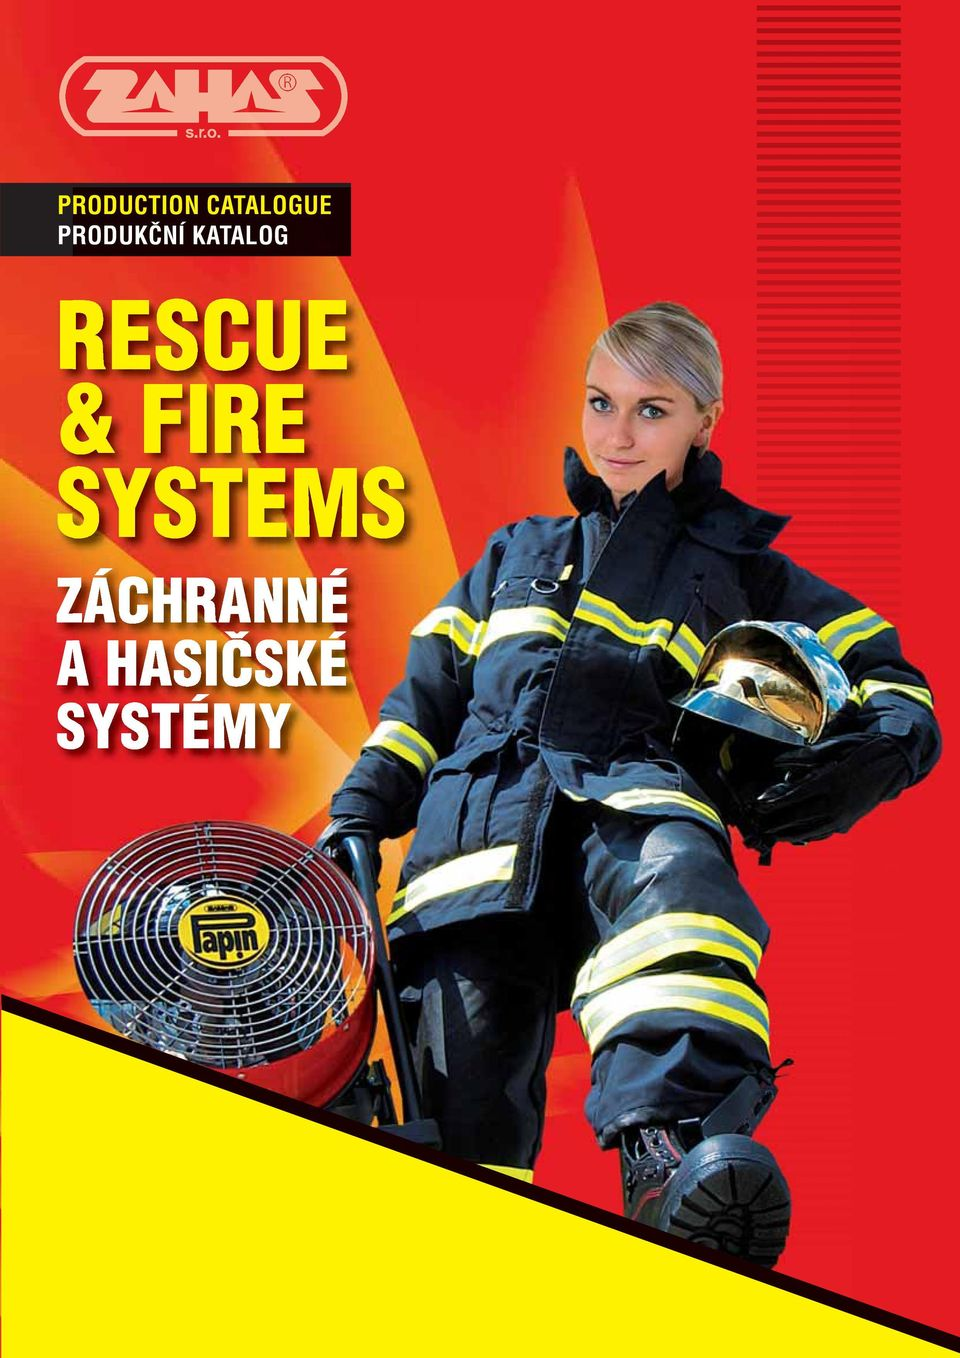 RESCUE & FIRE SYSTEMS